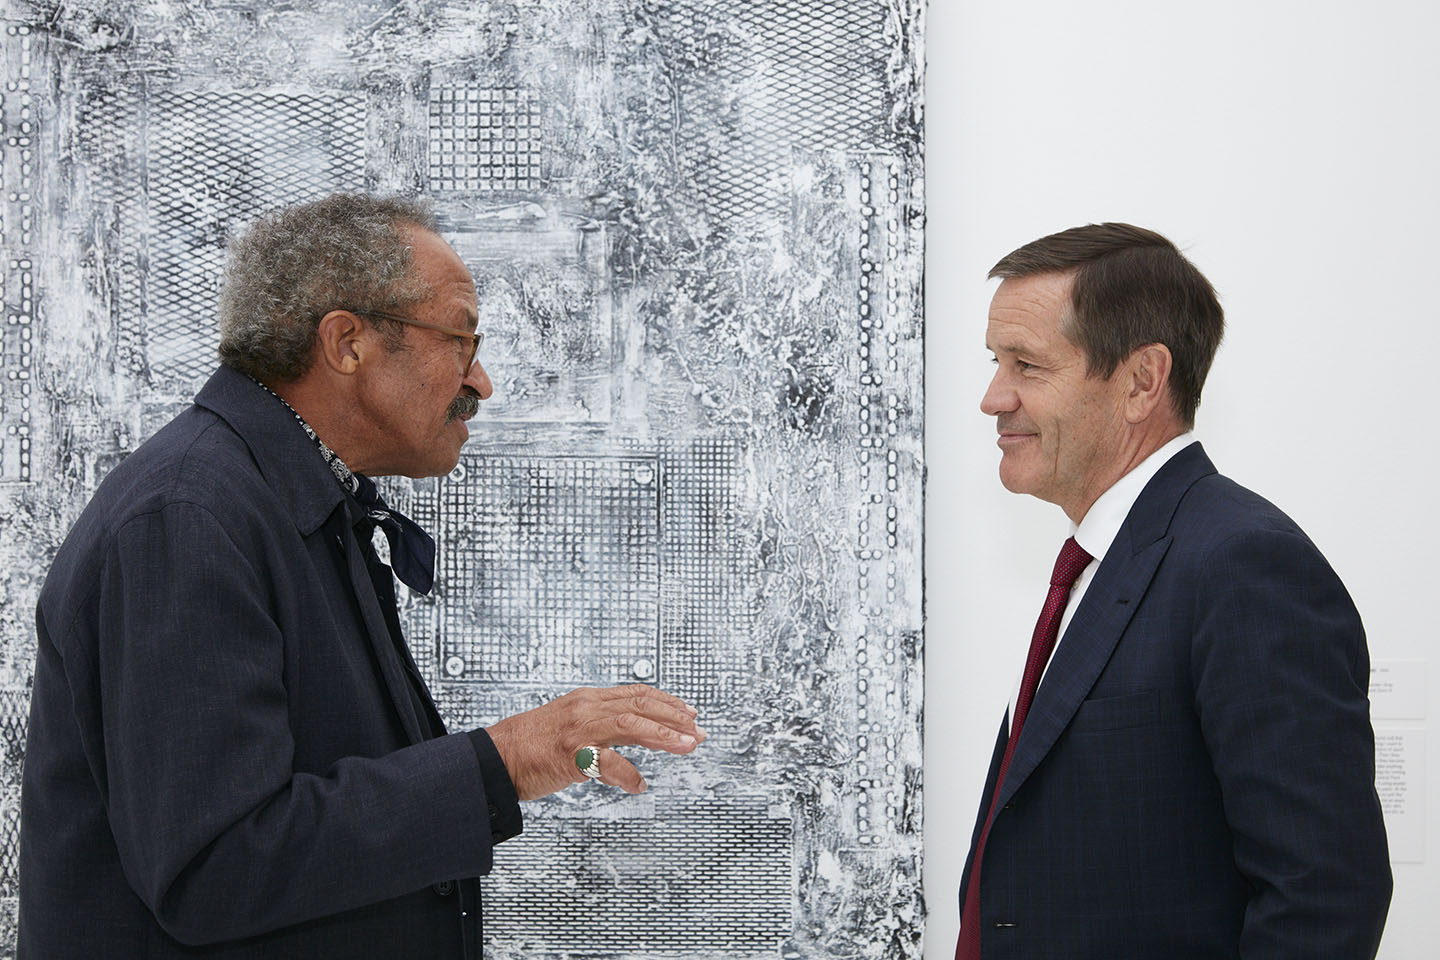 Taft with Jack Whitten, a preeminent African American painter, next to his work Garden in Bessemer. One of Taft's passions is collecting contemporary art, such as this work which he owns, and he serves on the Andy Warhol Foundation board. Gene Pittman